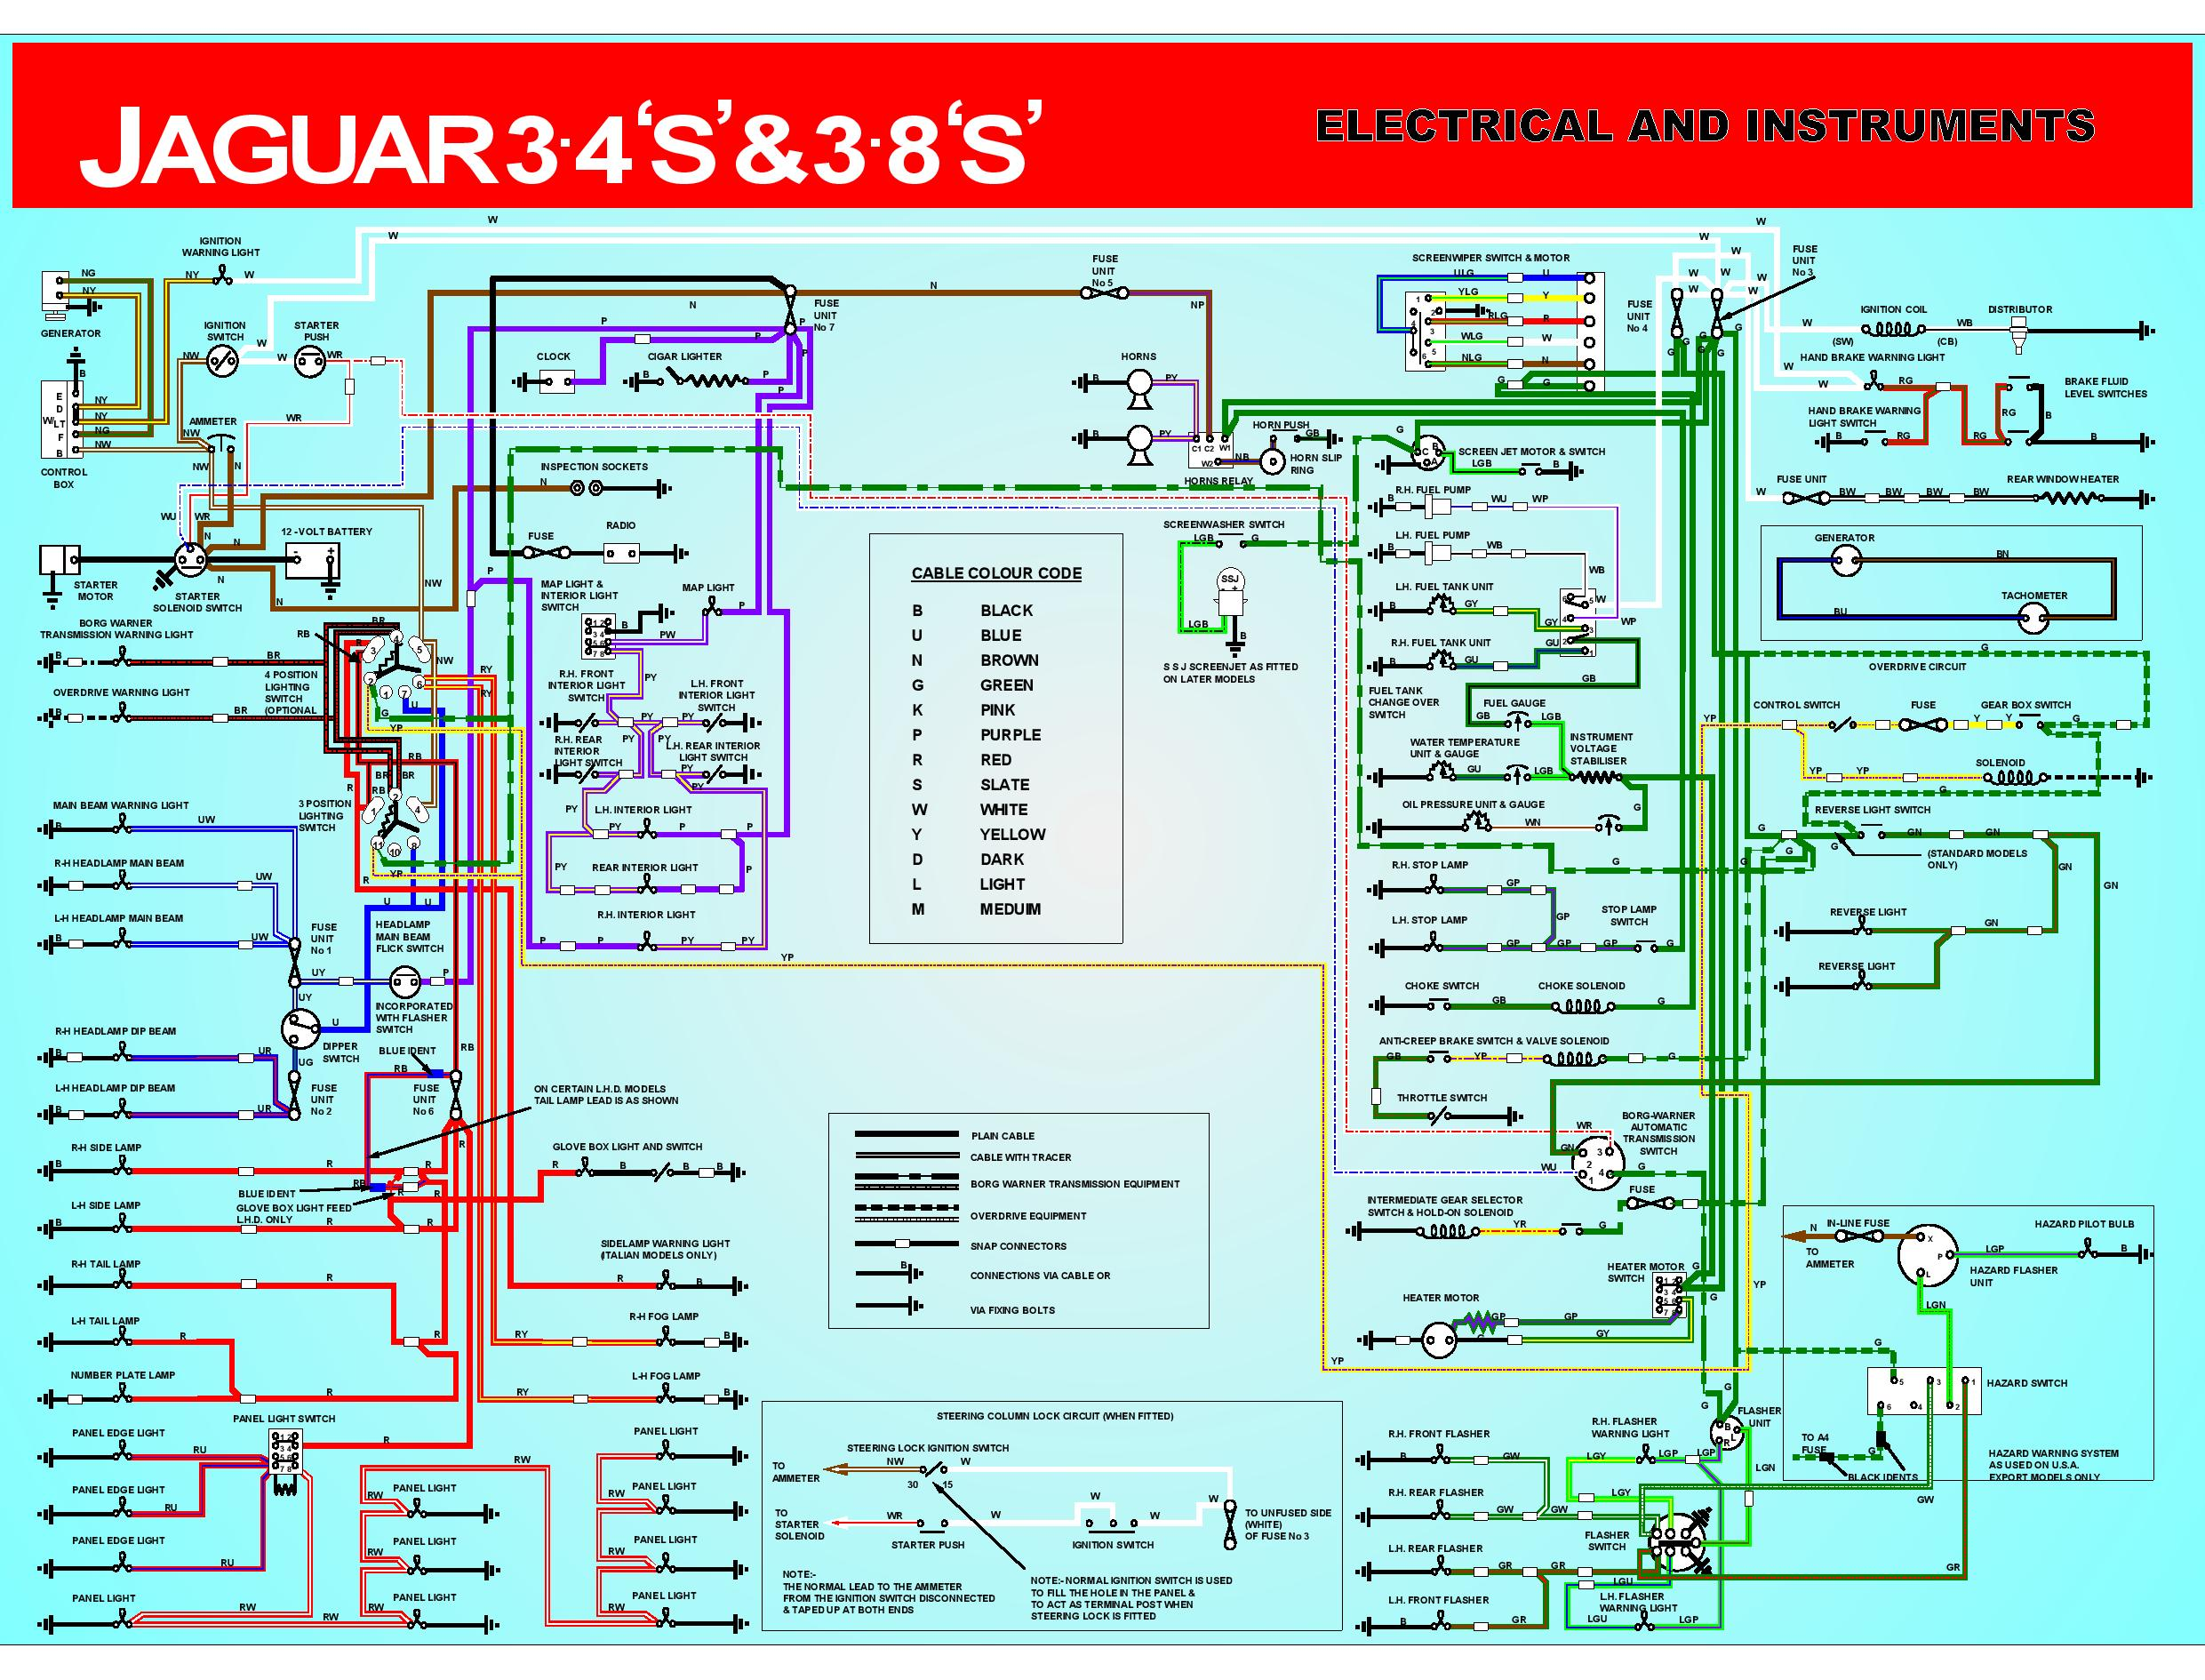 Jaguar S Type R Wiring Diagram Opinions About 2004 Pontiac Gto Fuel System Schematic 68 E Engine Free Image For User Manual Download Repair 2006 Pdf